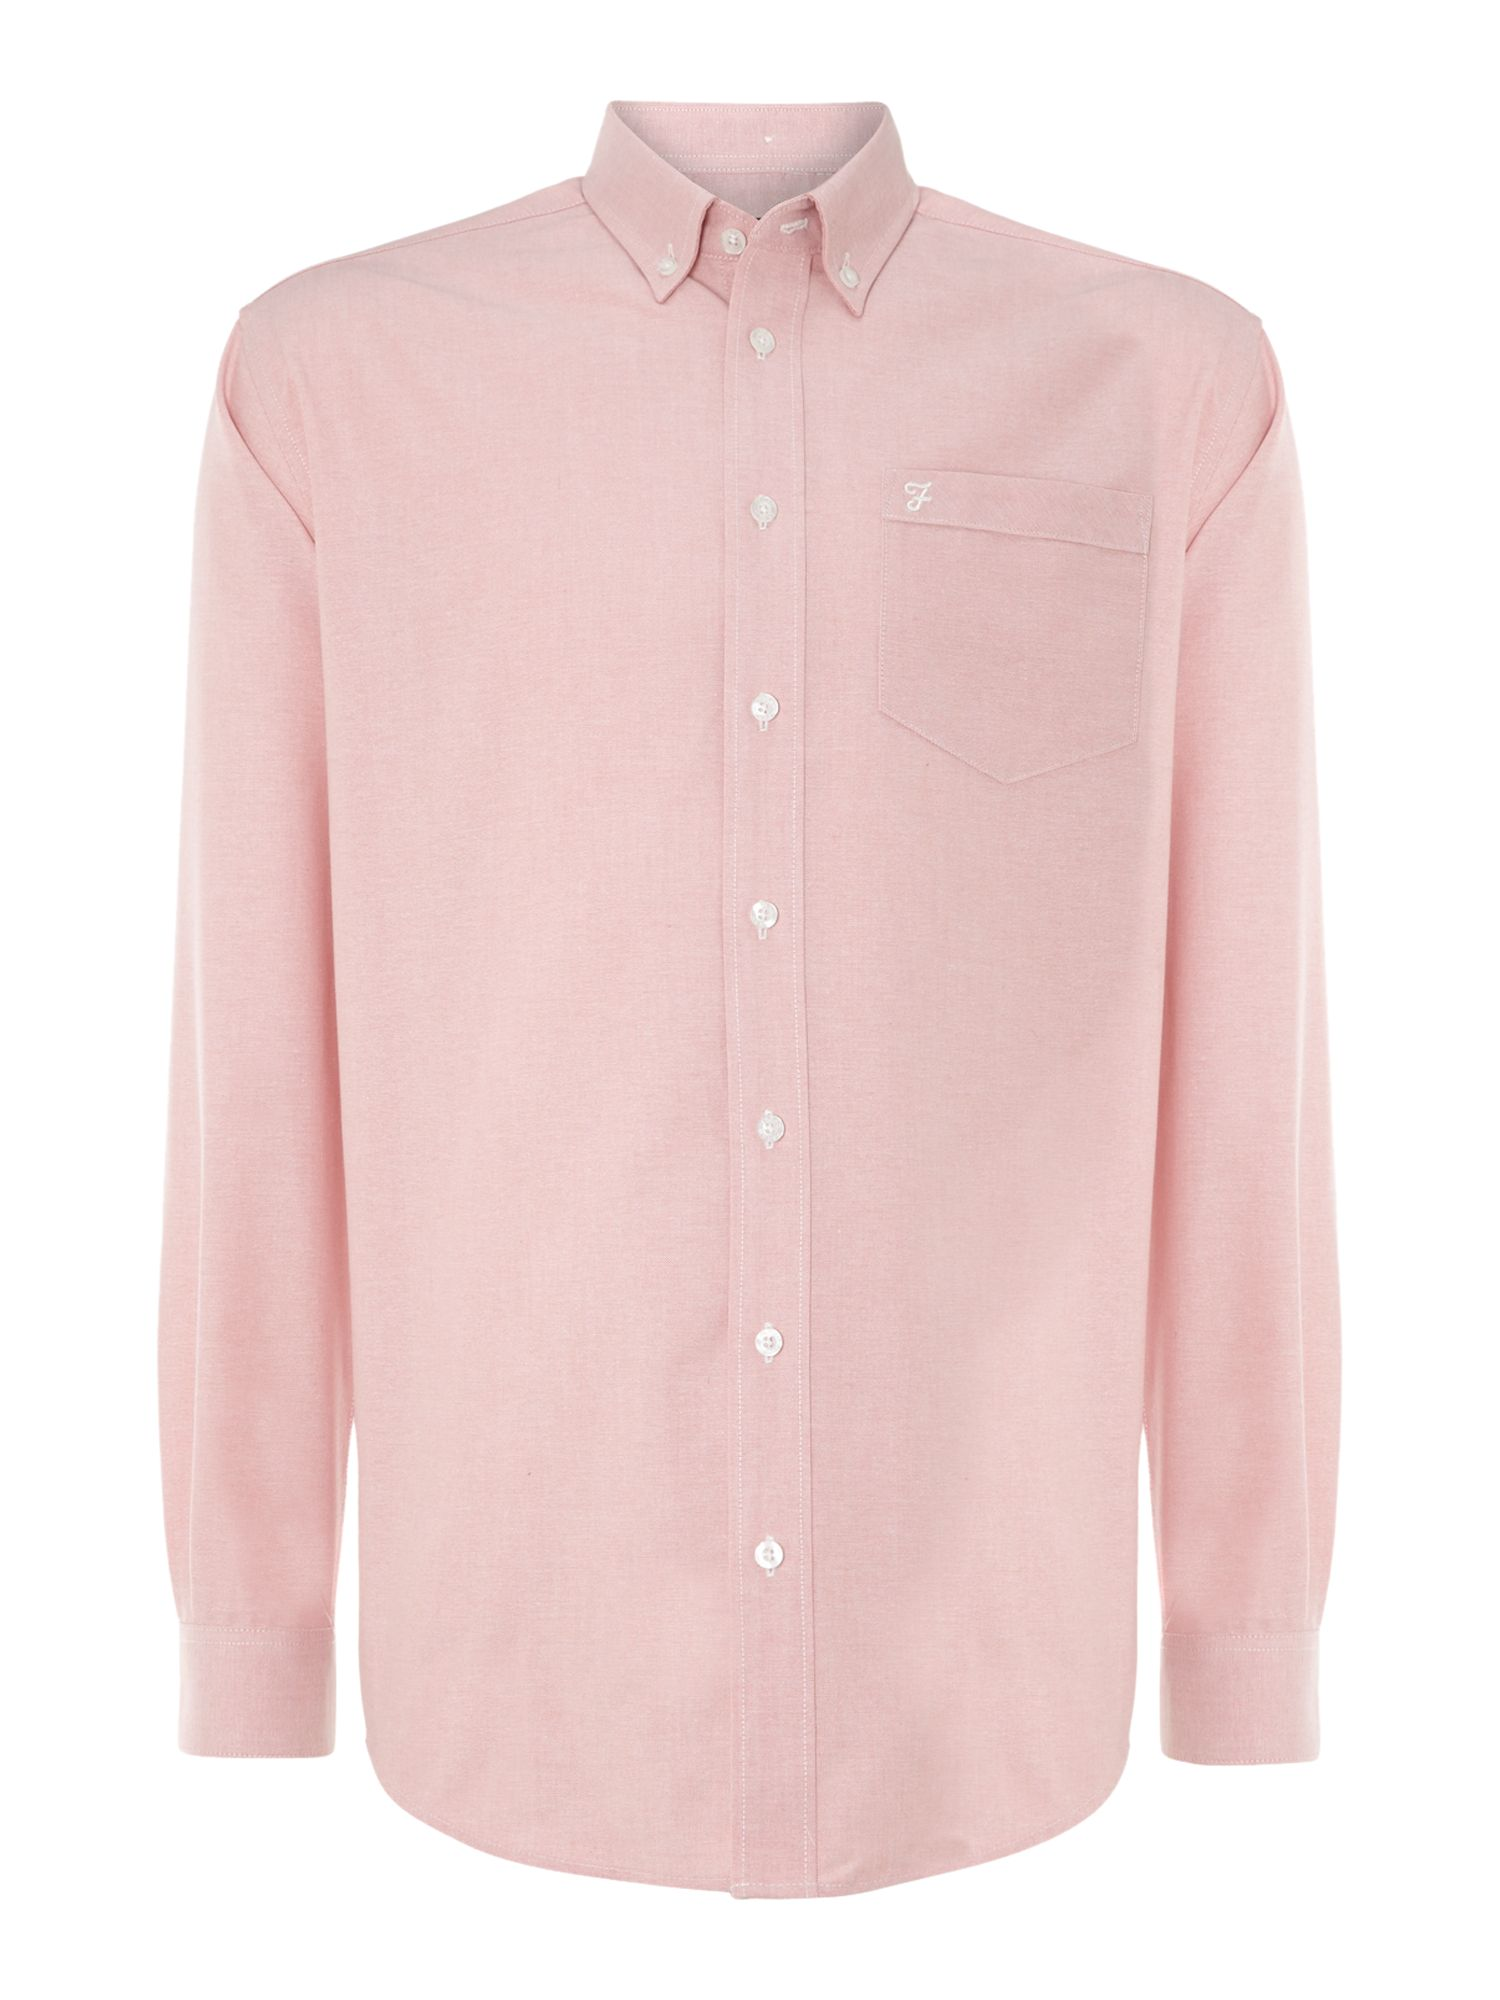 Rfit botton down collar shirt